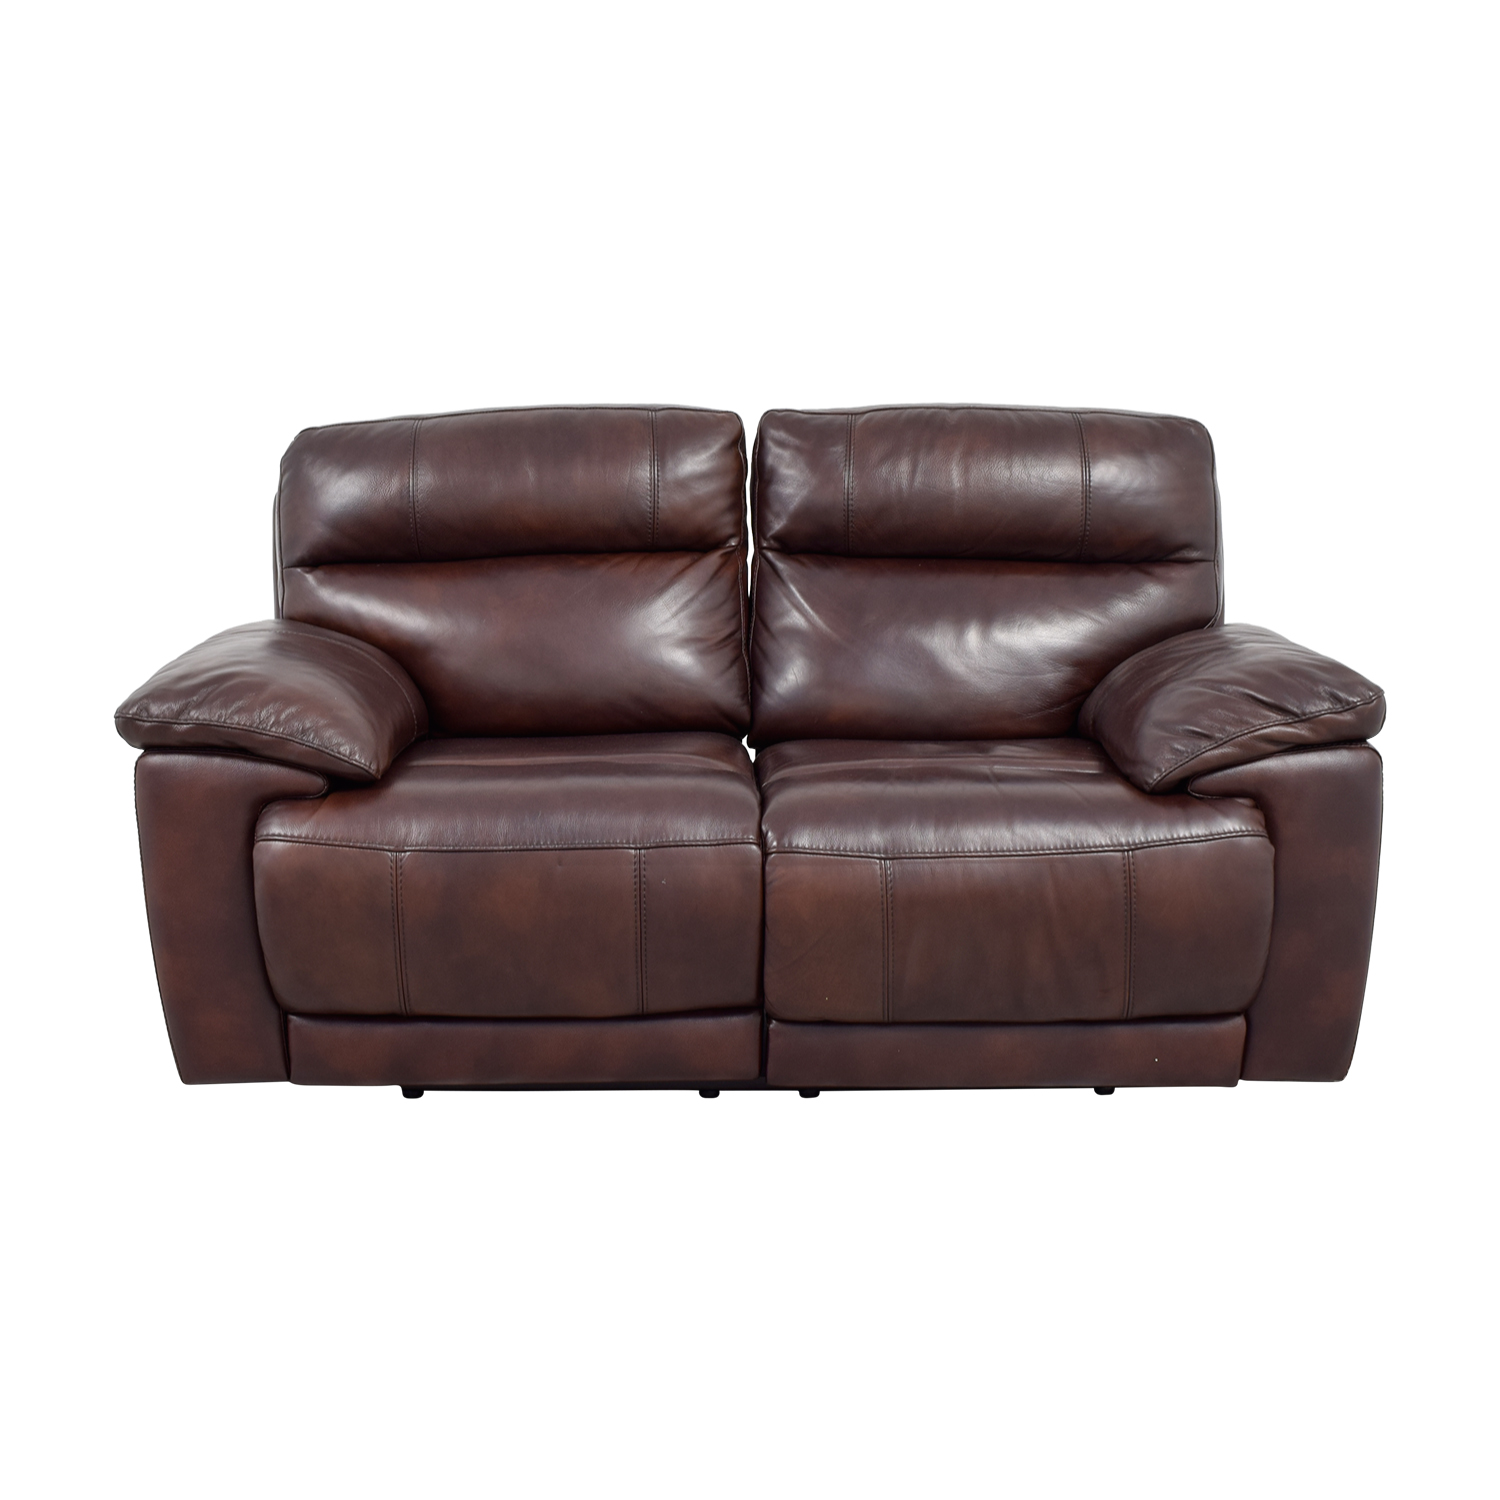 Raymour & Flanigan Raymour & Flanigan Burgundy Leather Double Reclining Sofa nyc